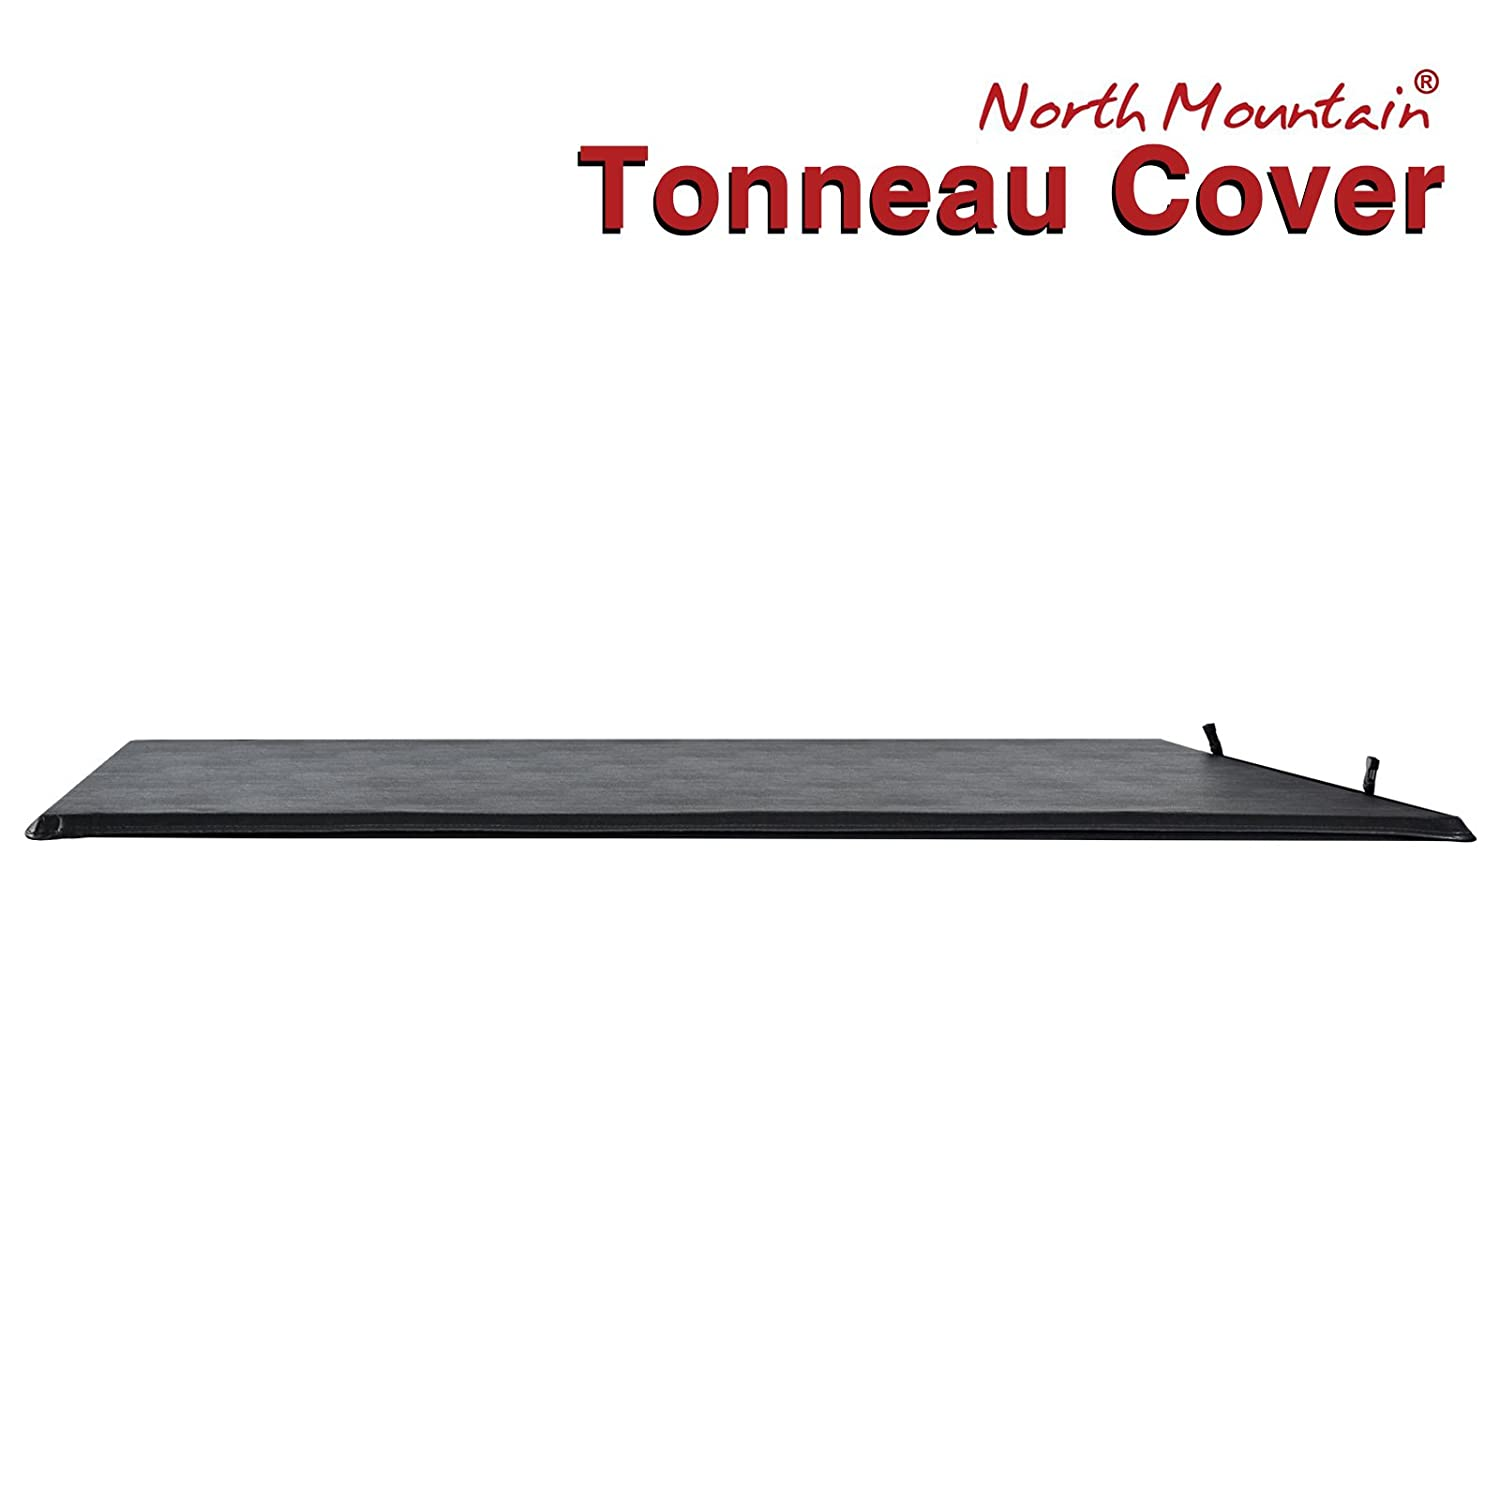 JJ Black Vinyl Clamp On Soft Lock /& Roll-up Tonneau Cover For 16-19 Toyota Tacoma Pickup 5ft Fleetside Bed